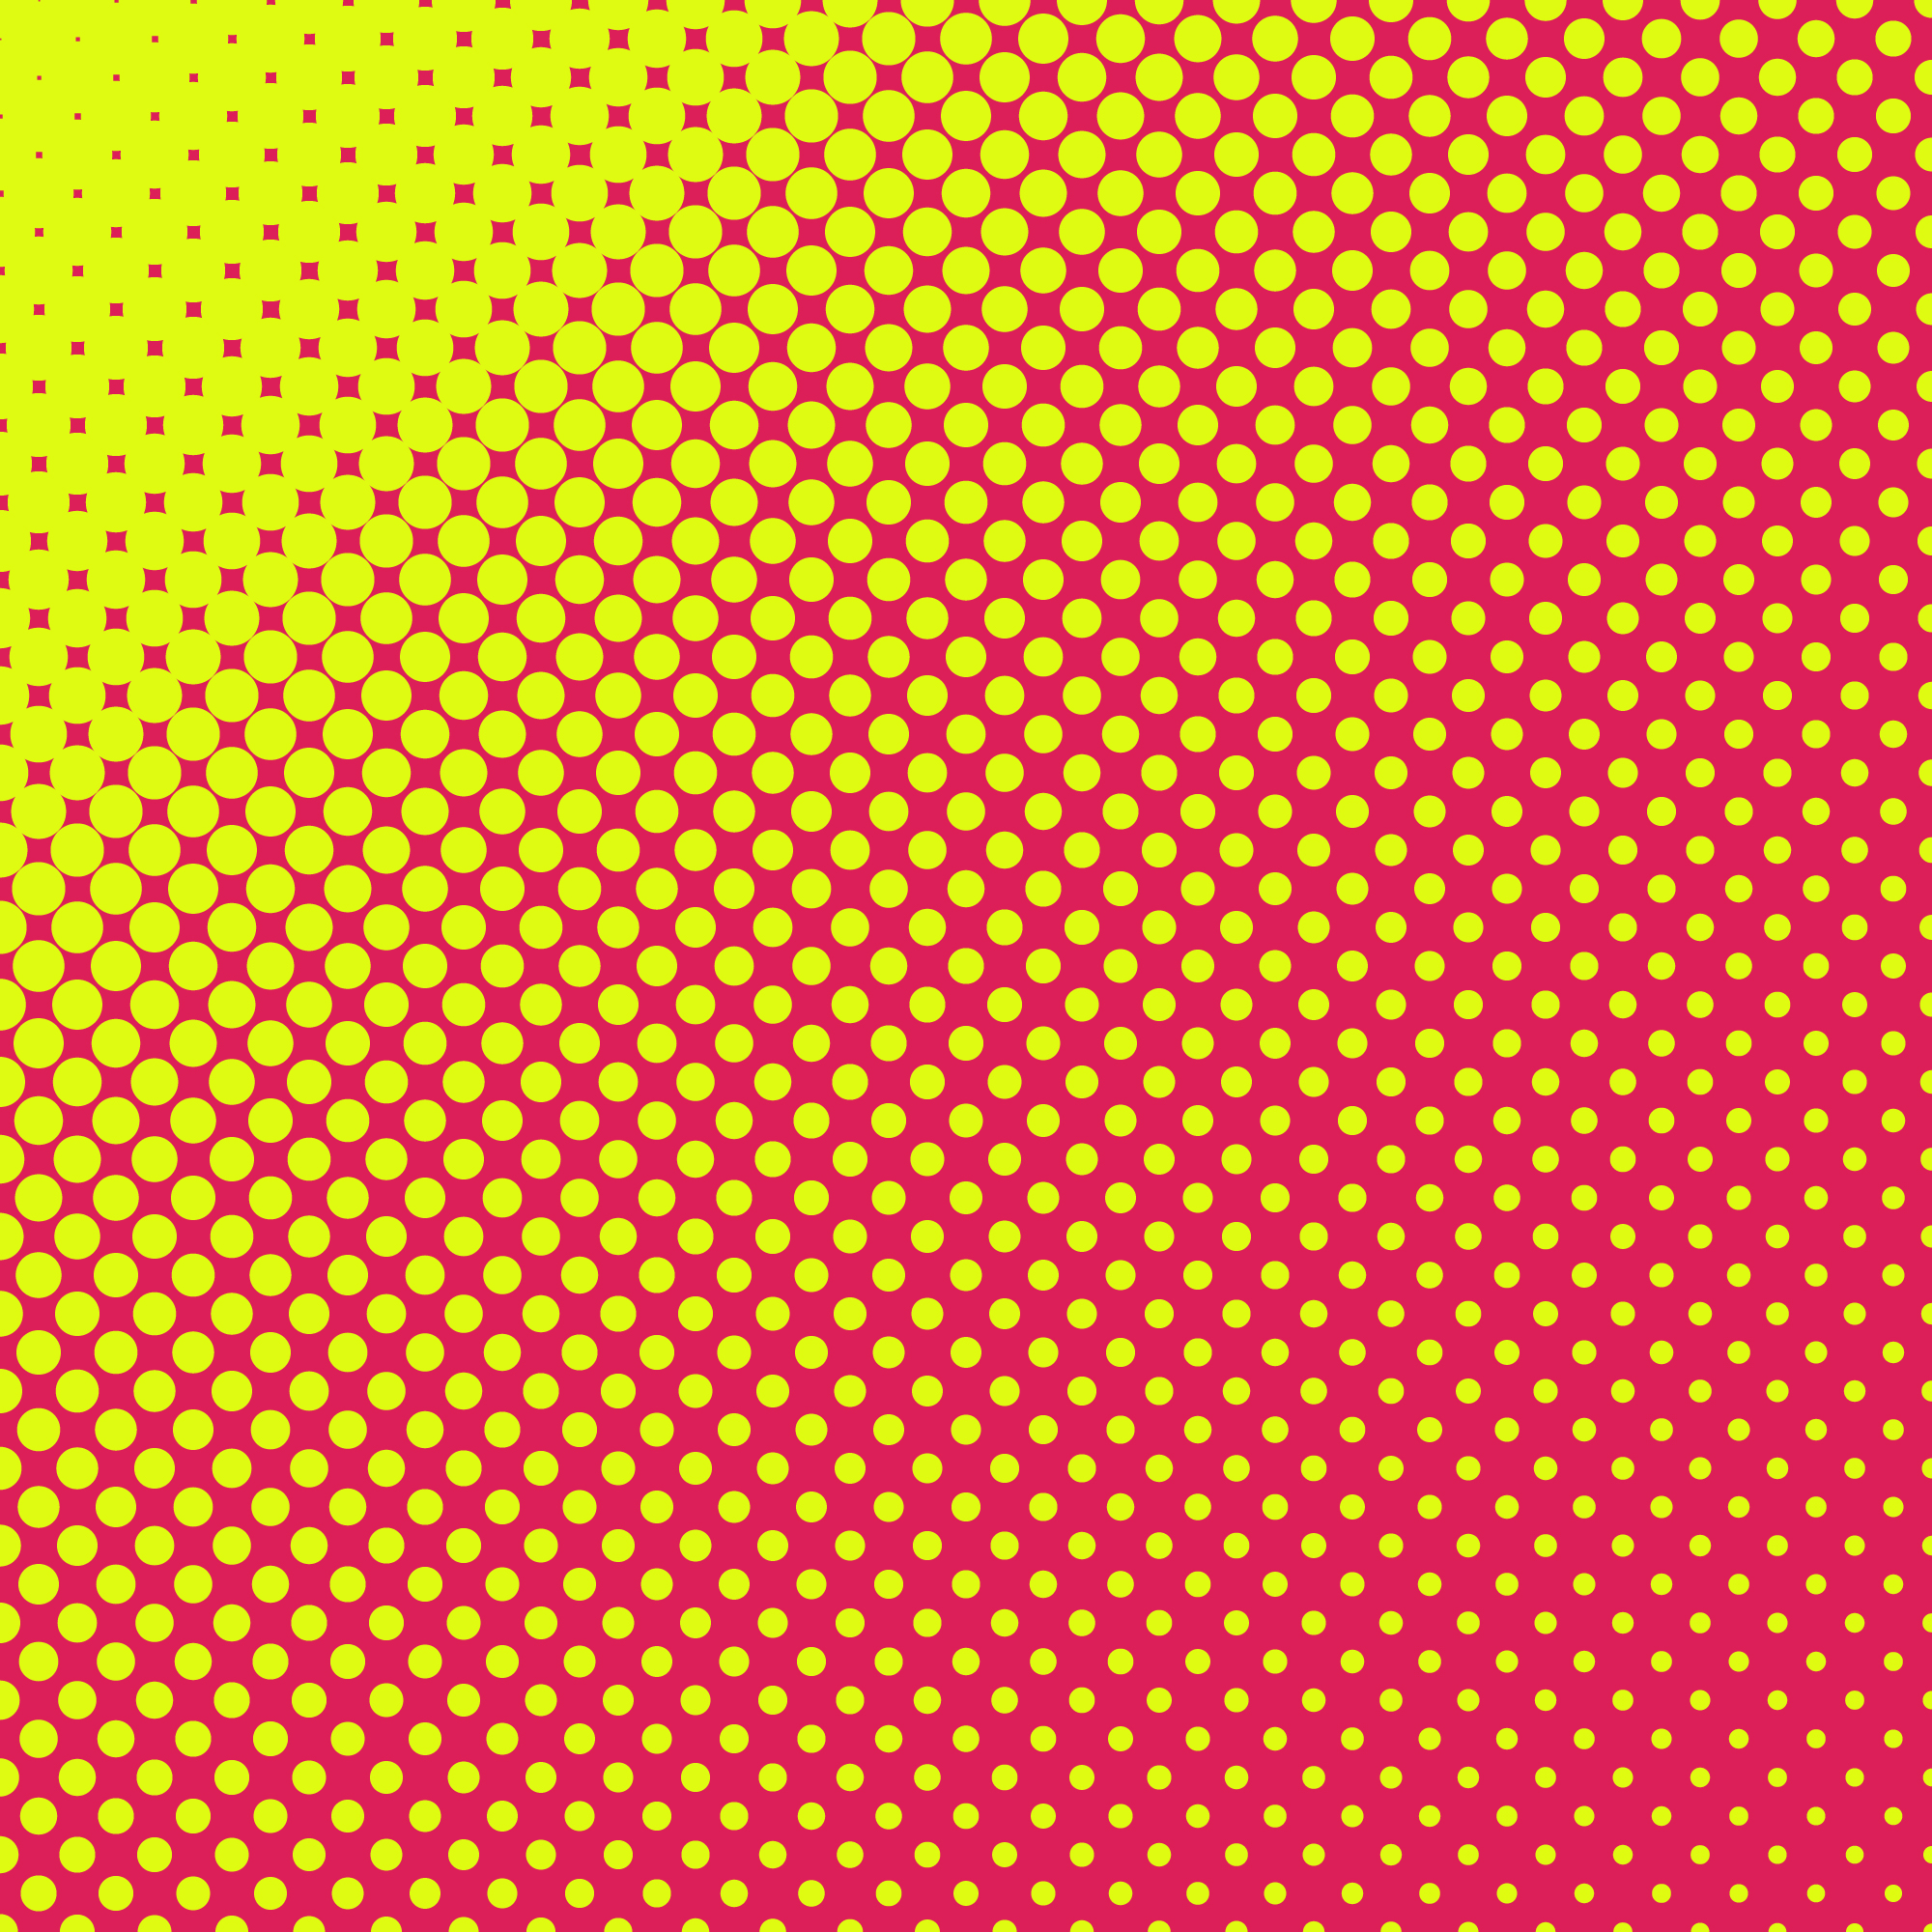 Yellow and pink halftoned dots background